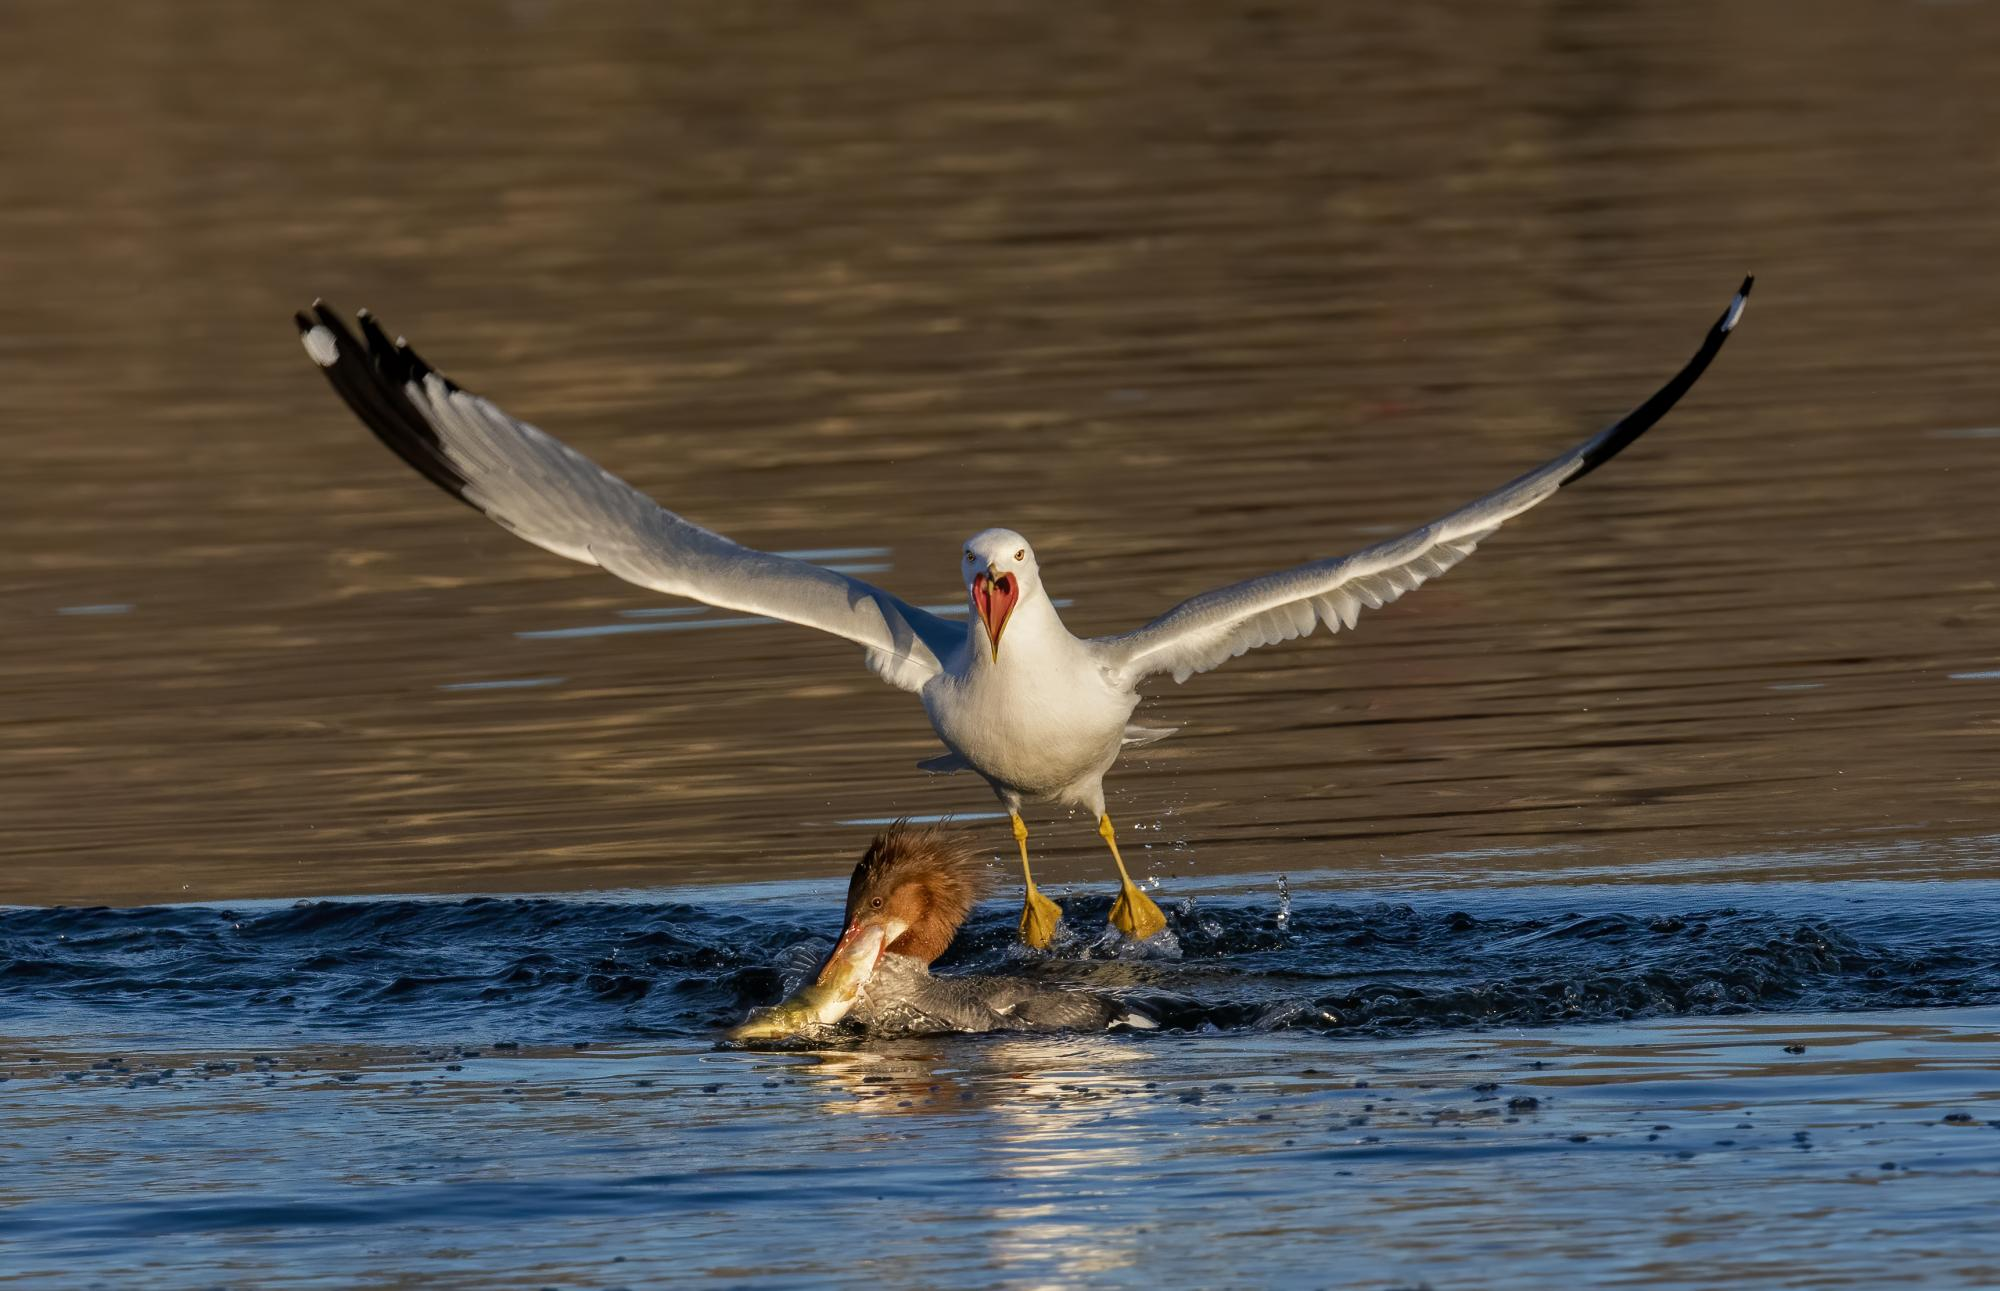 Photo of a gull attempting to steal another bird's fish